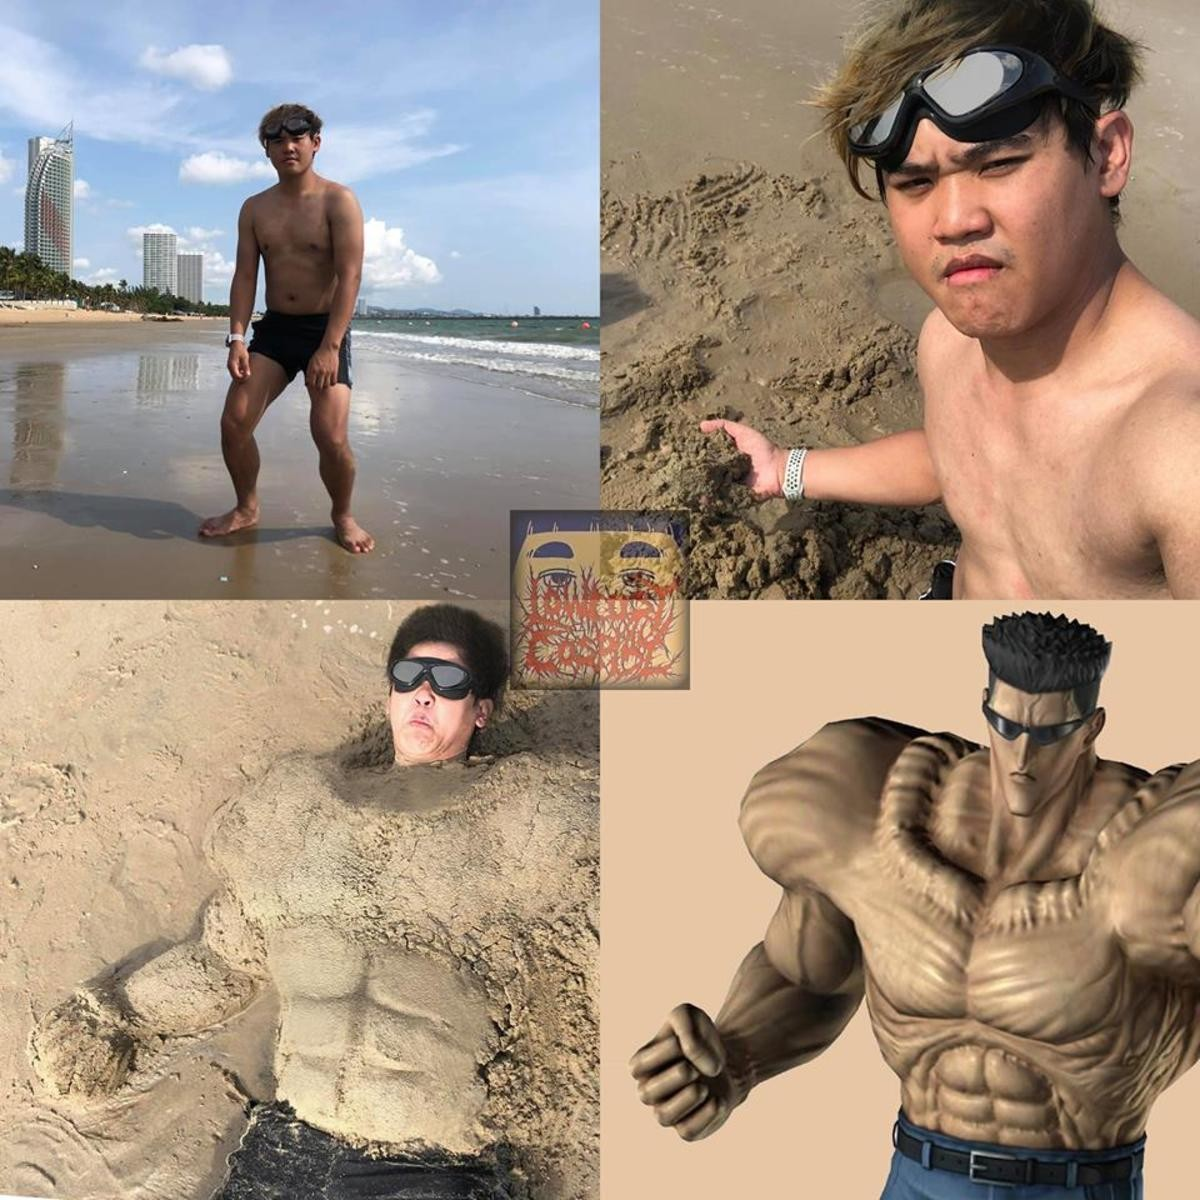 Sand cosplay. .. Ok is it just me or does he look like he has strong-ass legs?